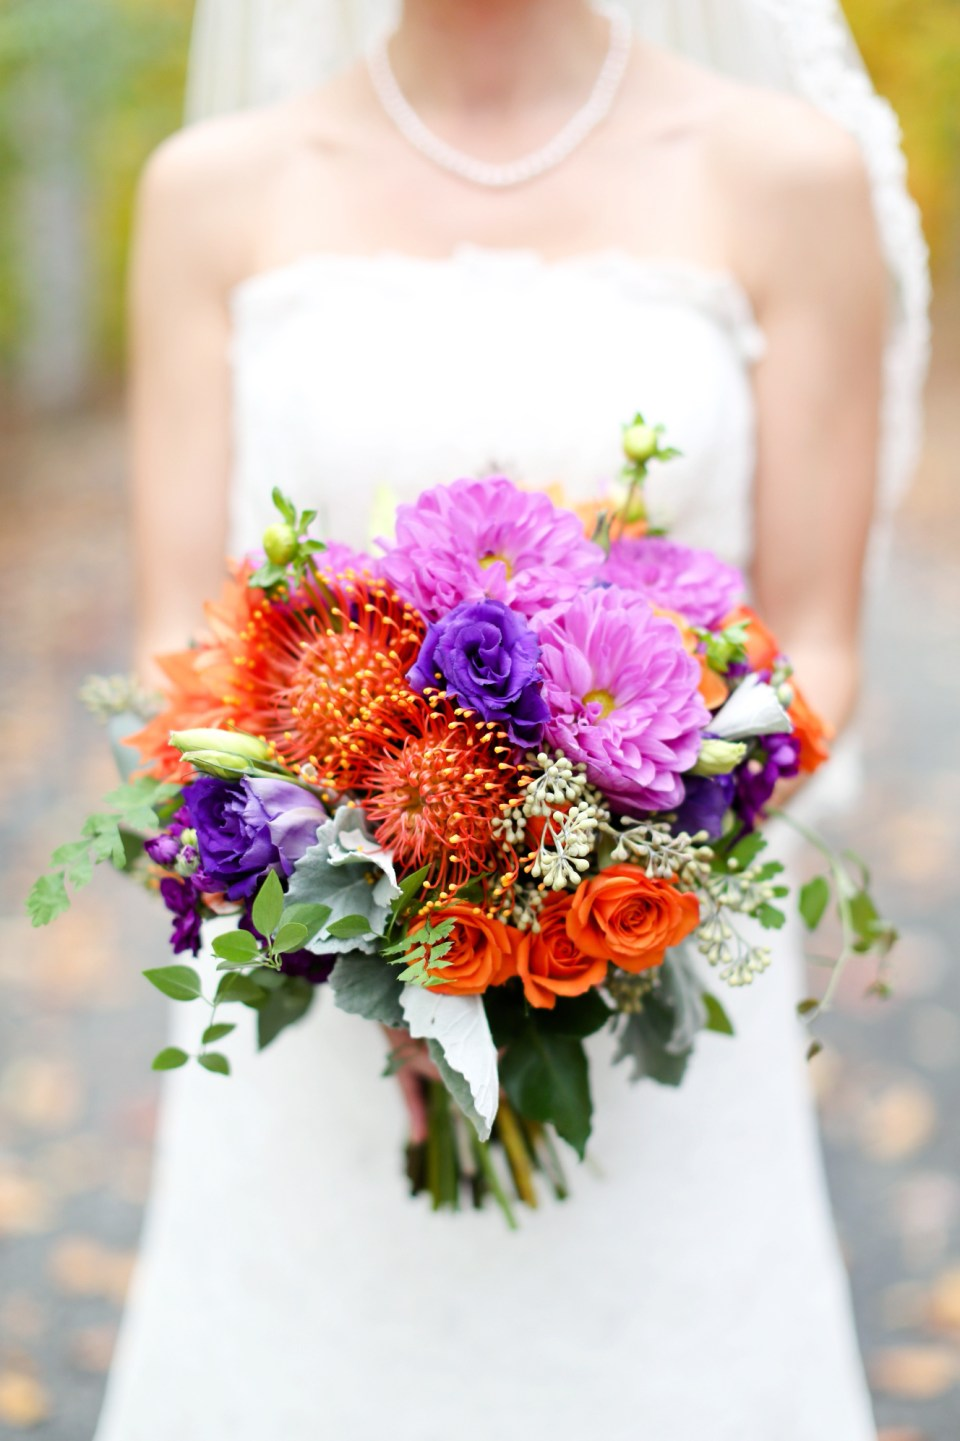 Fall-Wedding-Bouquet-Inspiration-Flowers-Bridal-Bridesmaids401